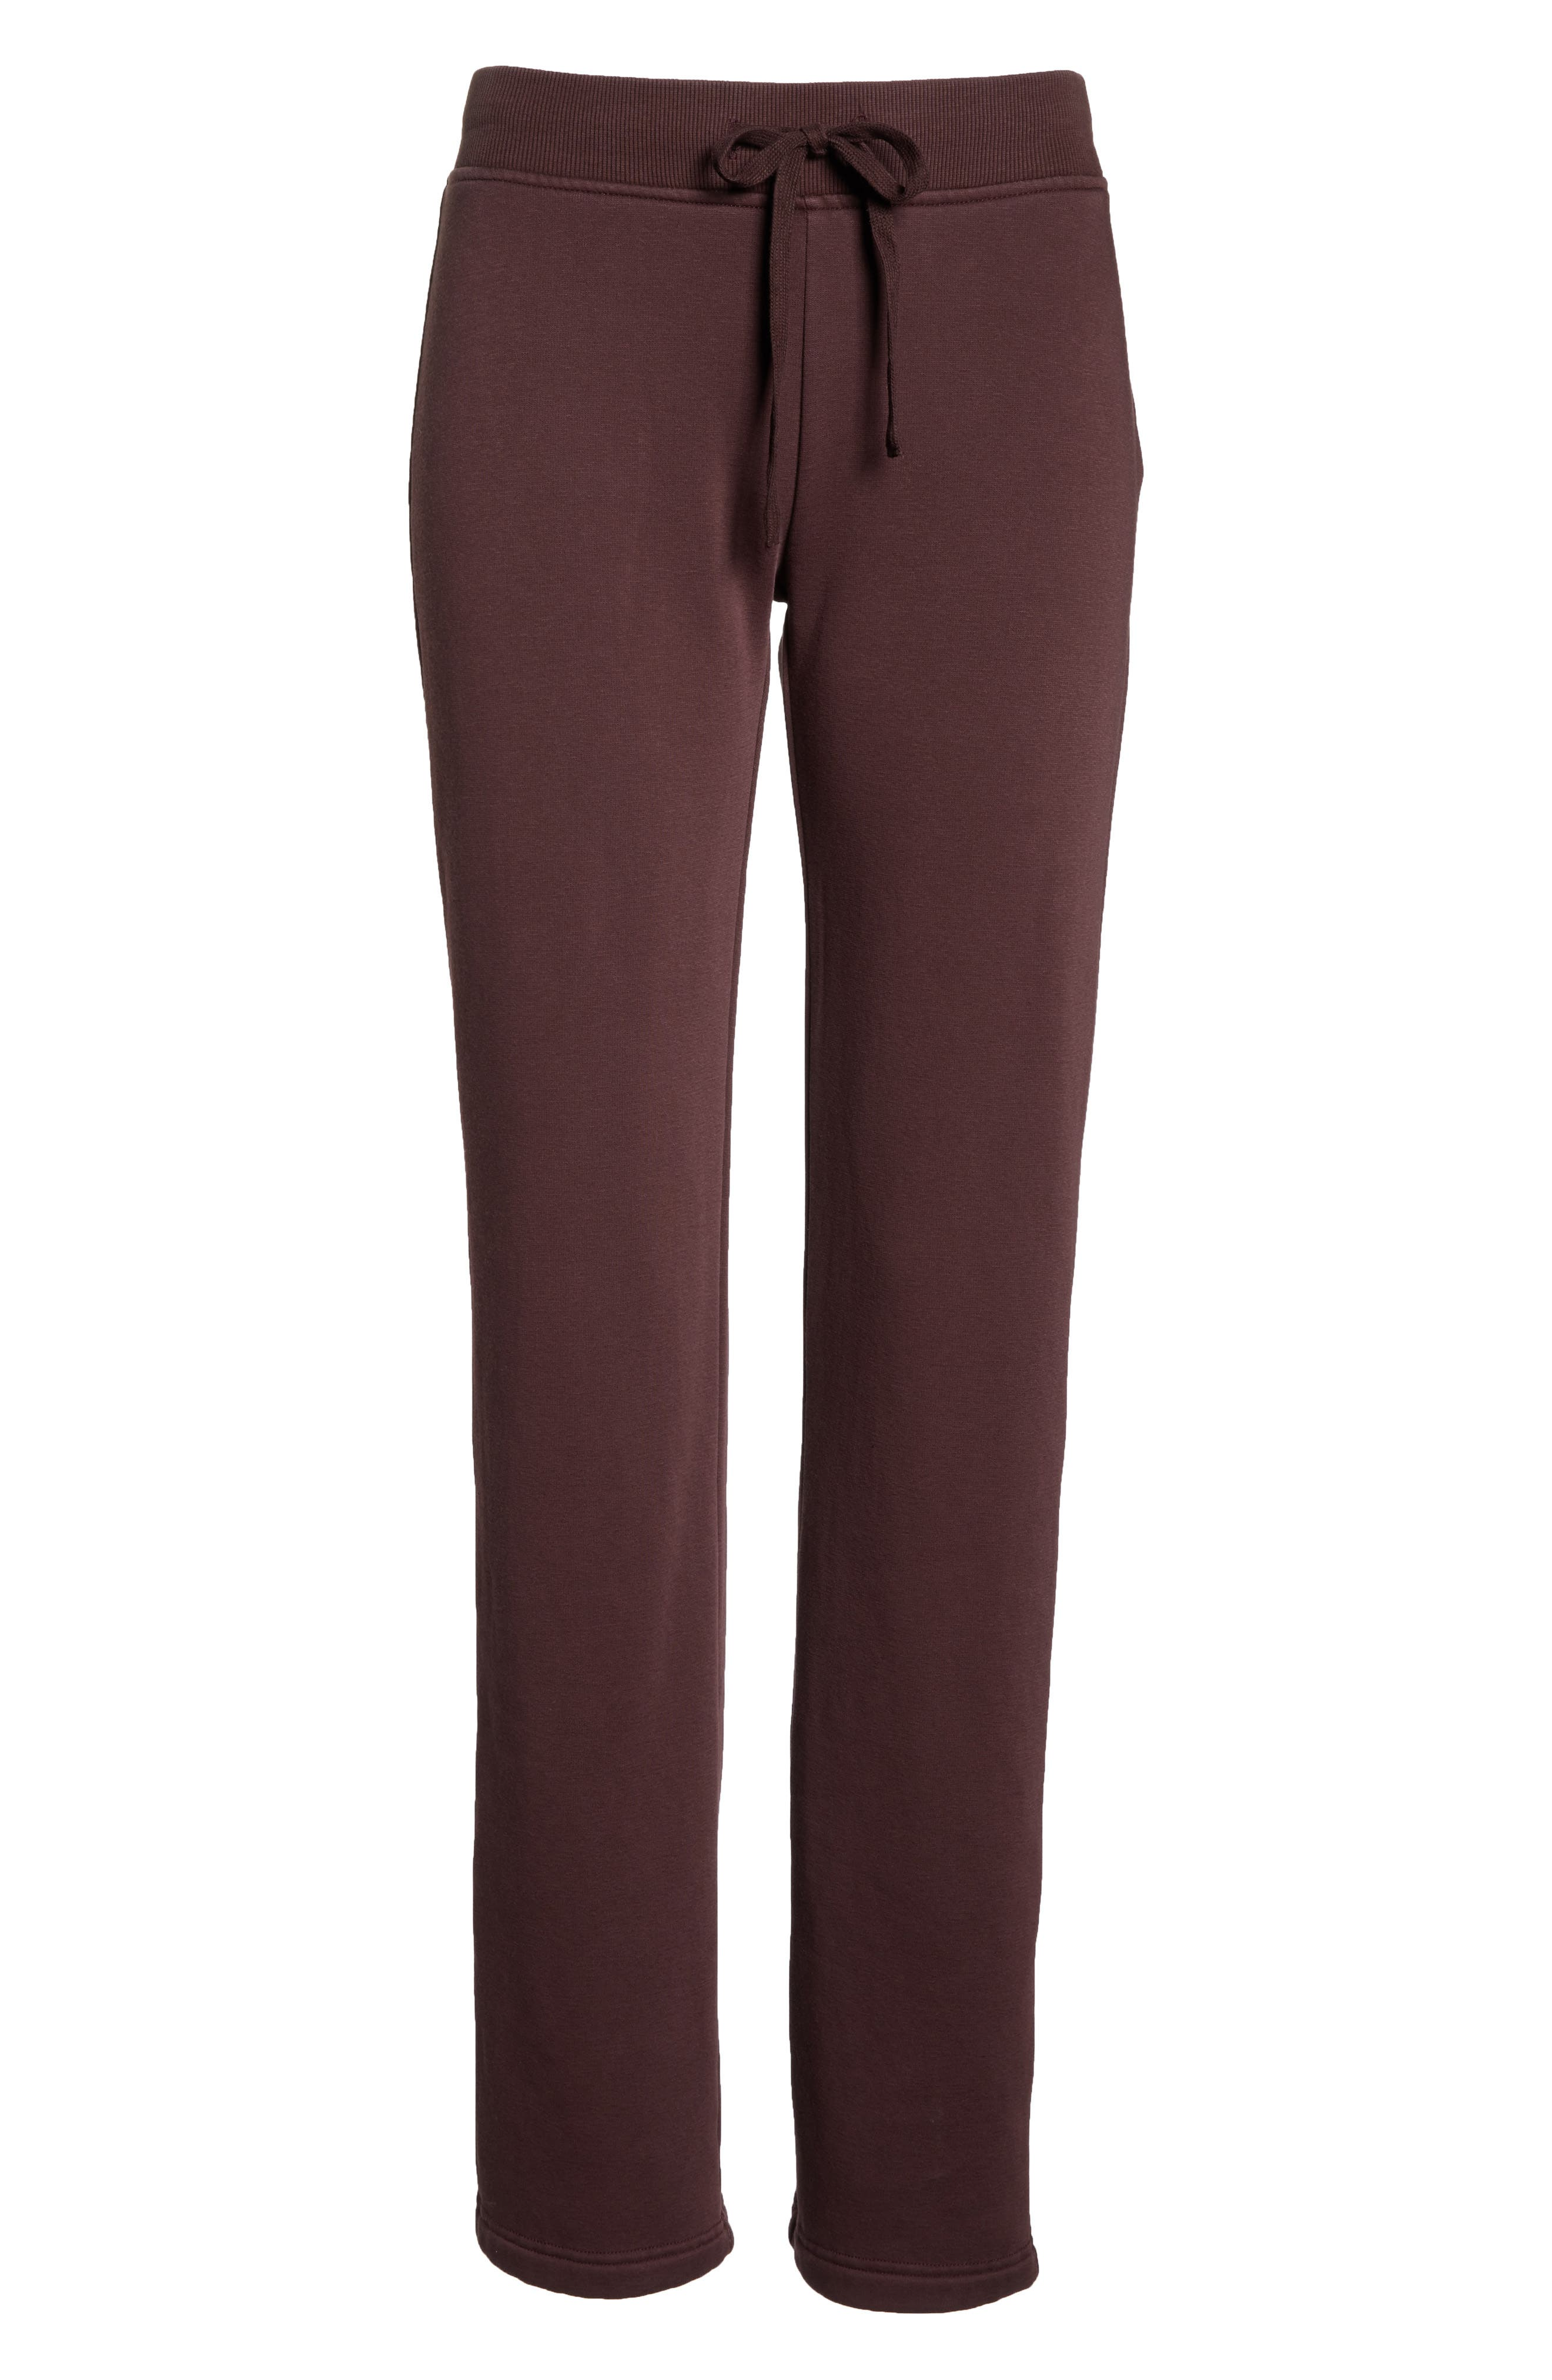 Penny Washed Lounge Pants,                             Alternate thumbnail 6, color,                             PORT